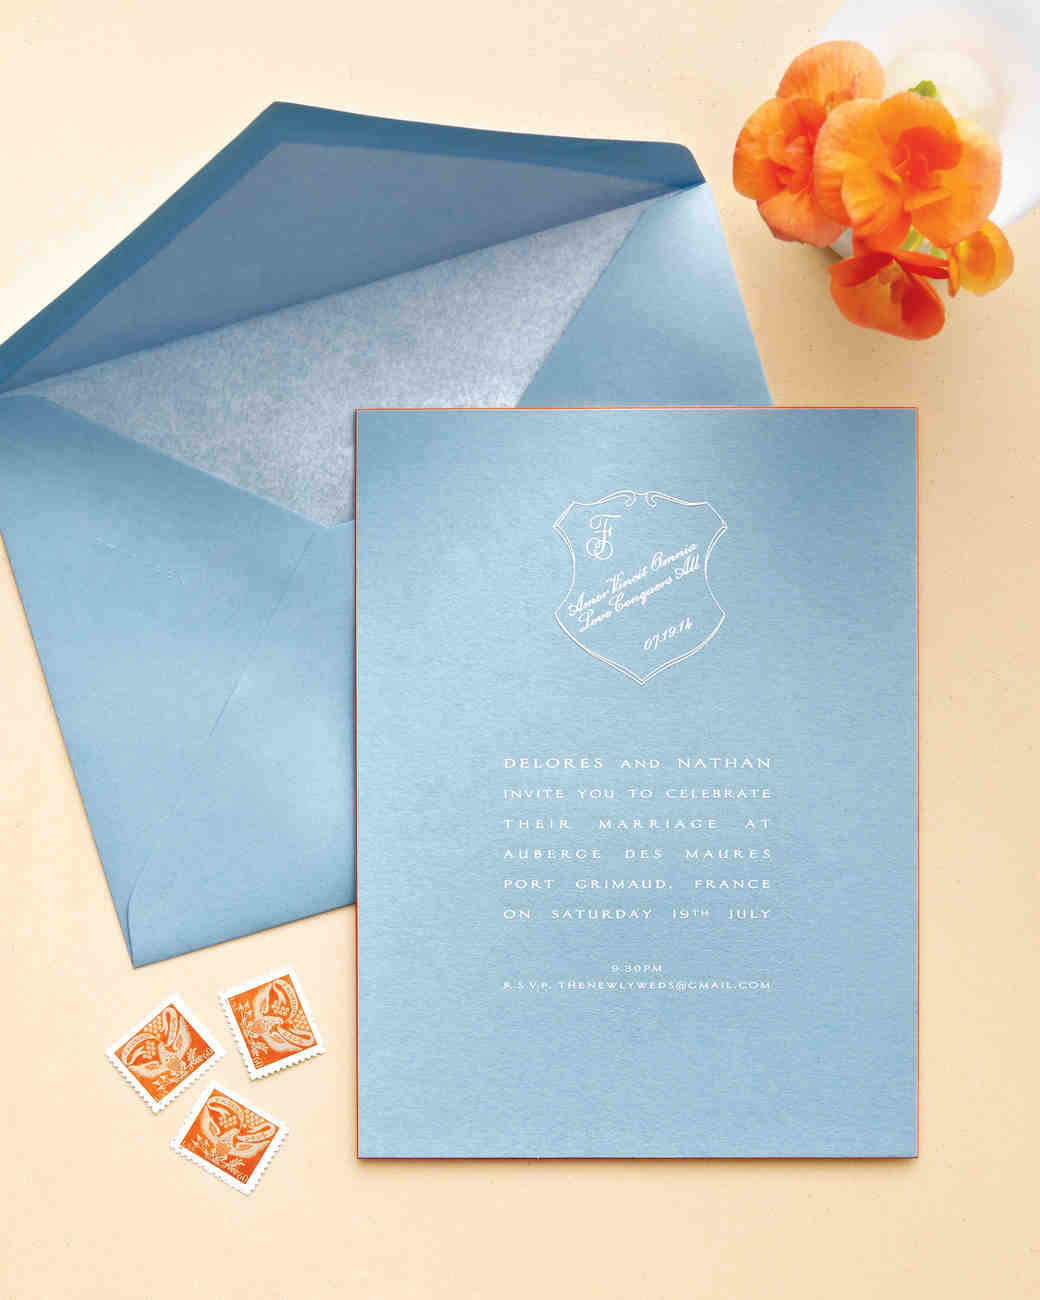 10 Reasons To Consider Cornflower Blue And Melon For Your Wedding